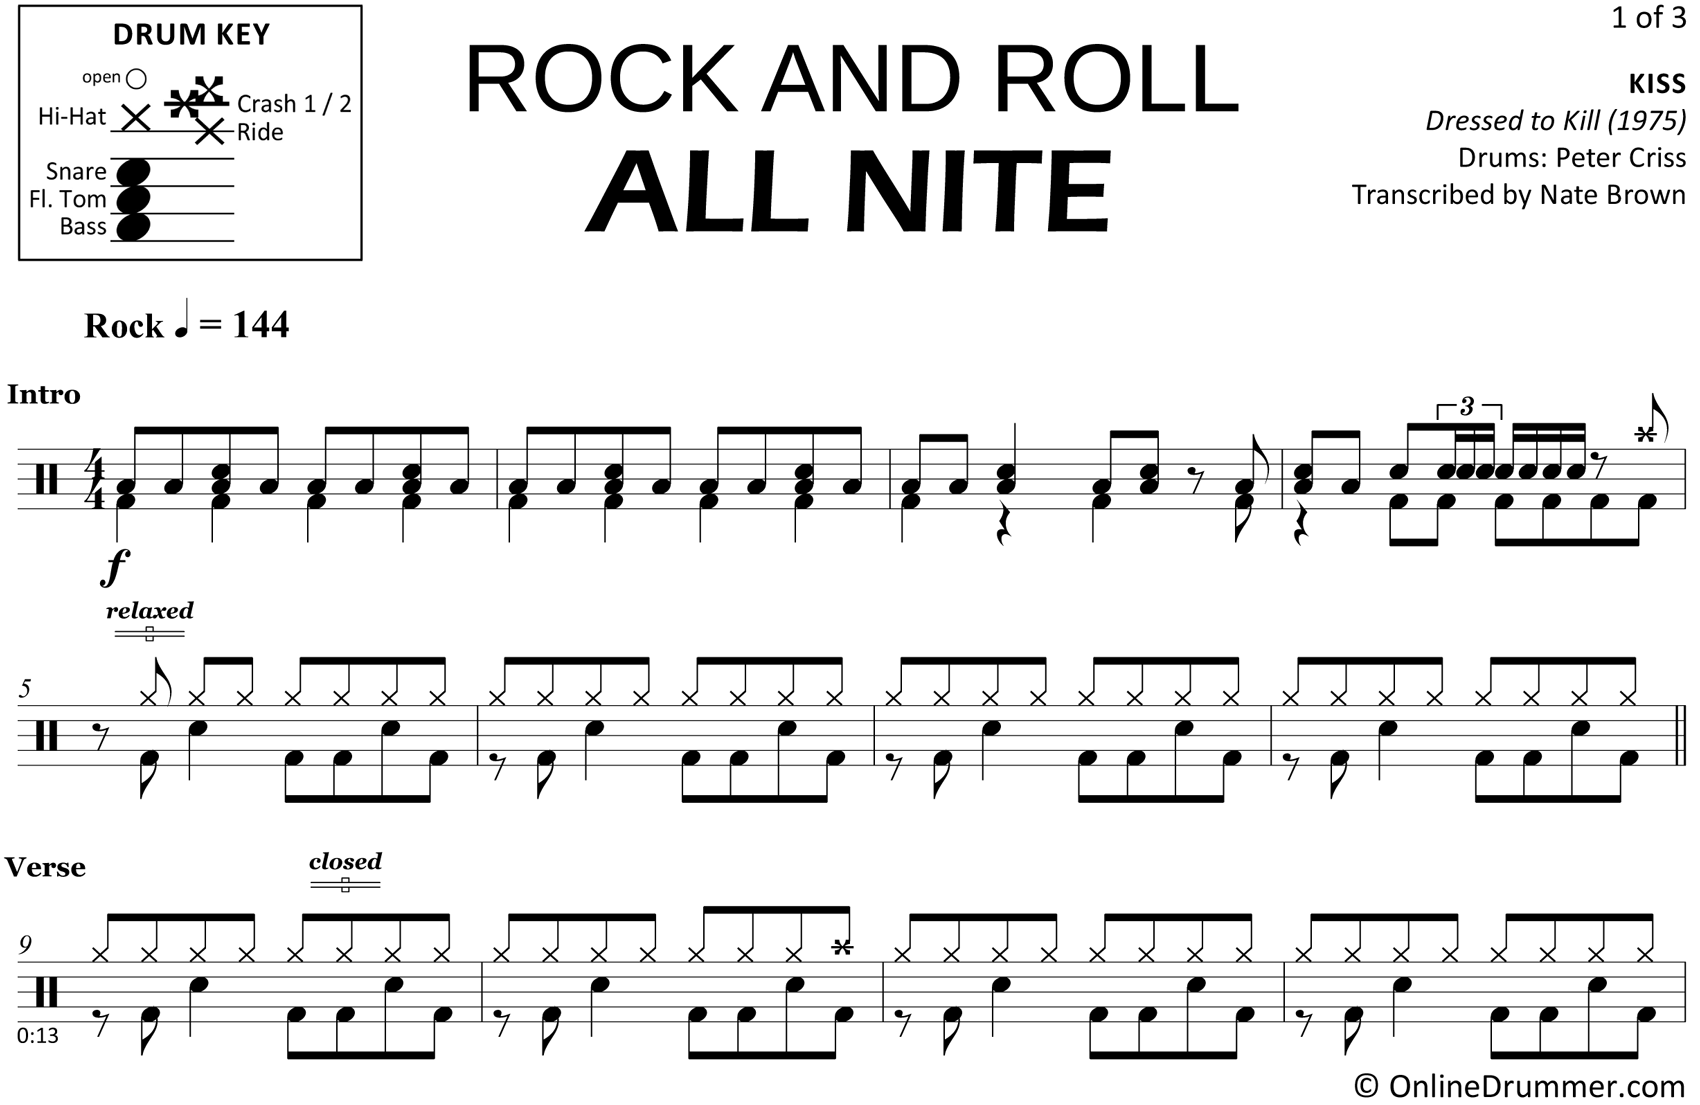 Rock and Roll All Nite - KISS - Drum Sheet Music